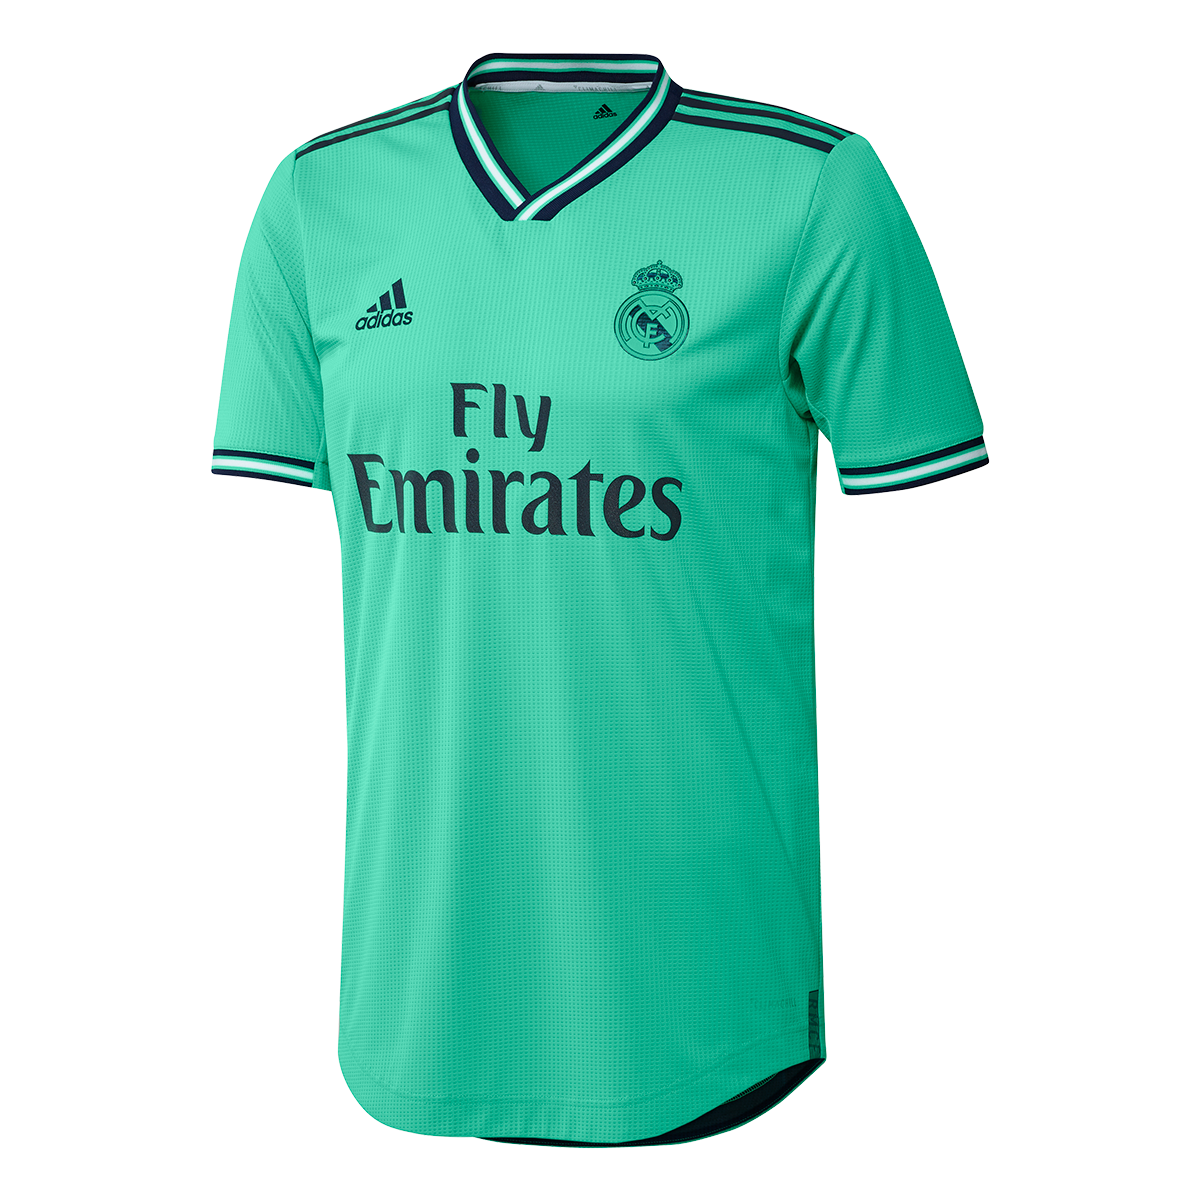 finest selection 80c66 ea9f0 Camiseta Real Madrid Tercera Equipación Authentic 2019-2020 HI-Re  green-Night indigo